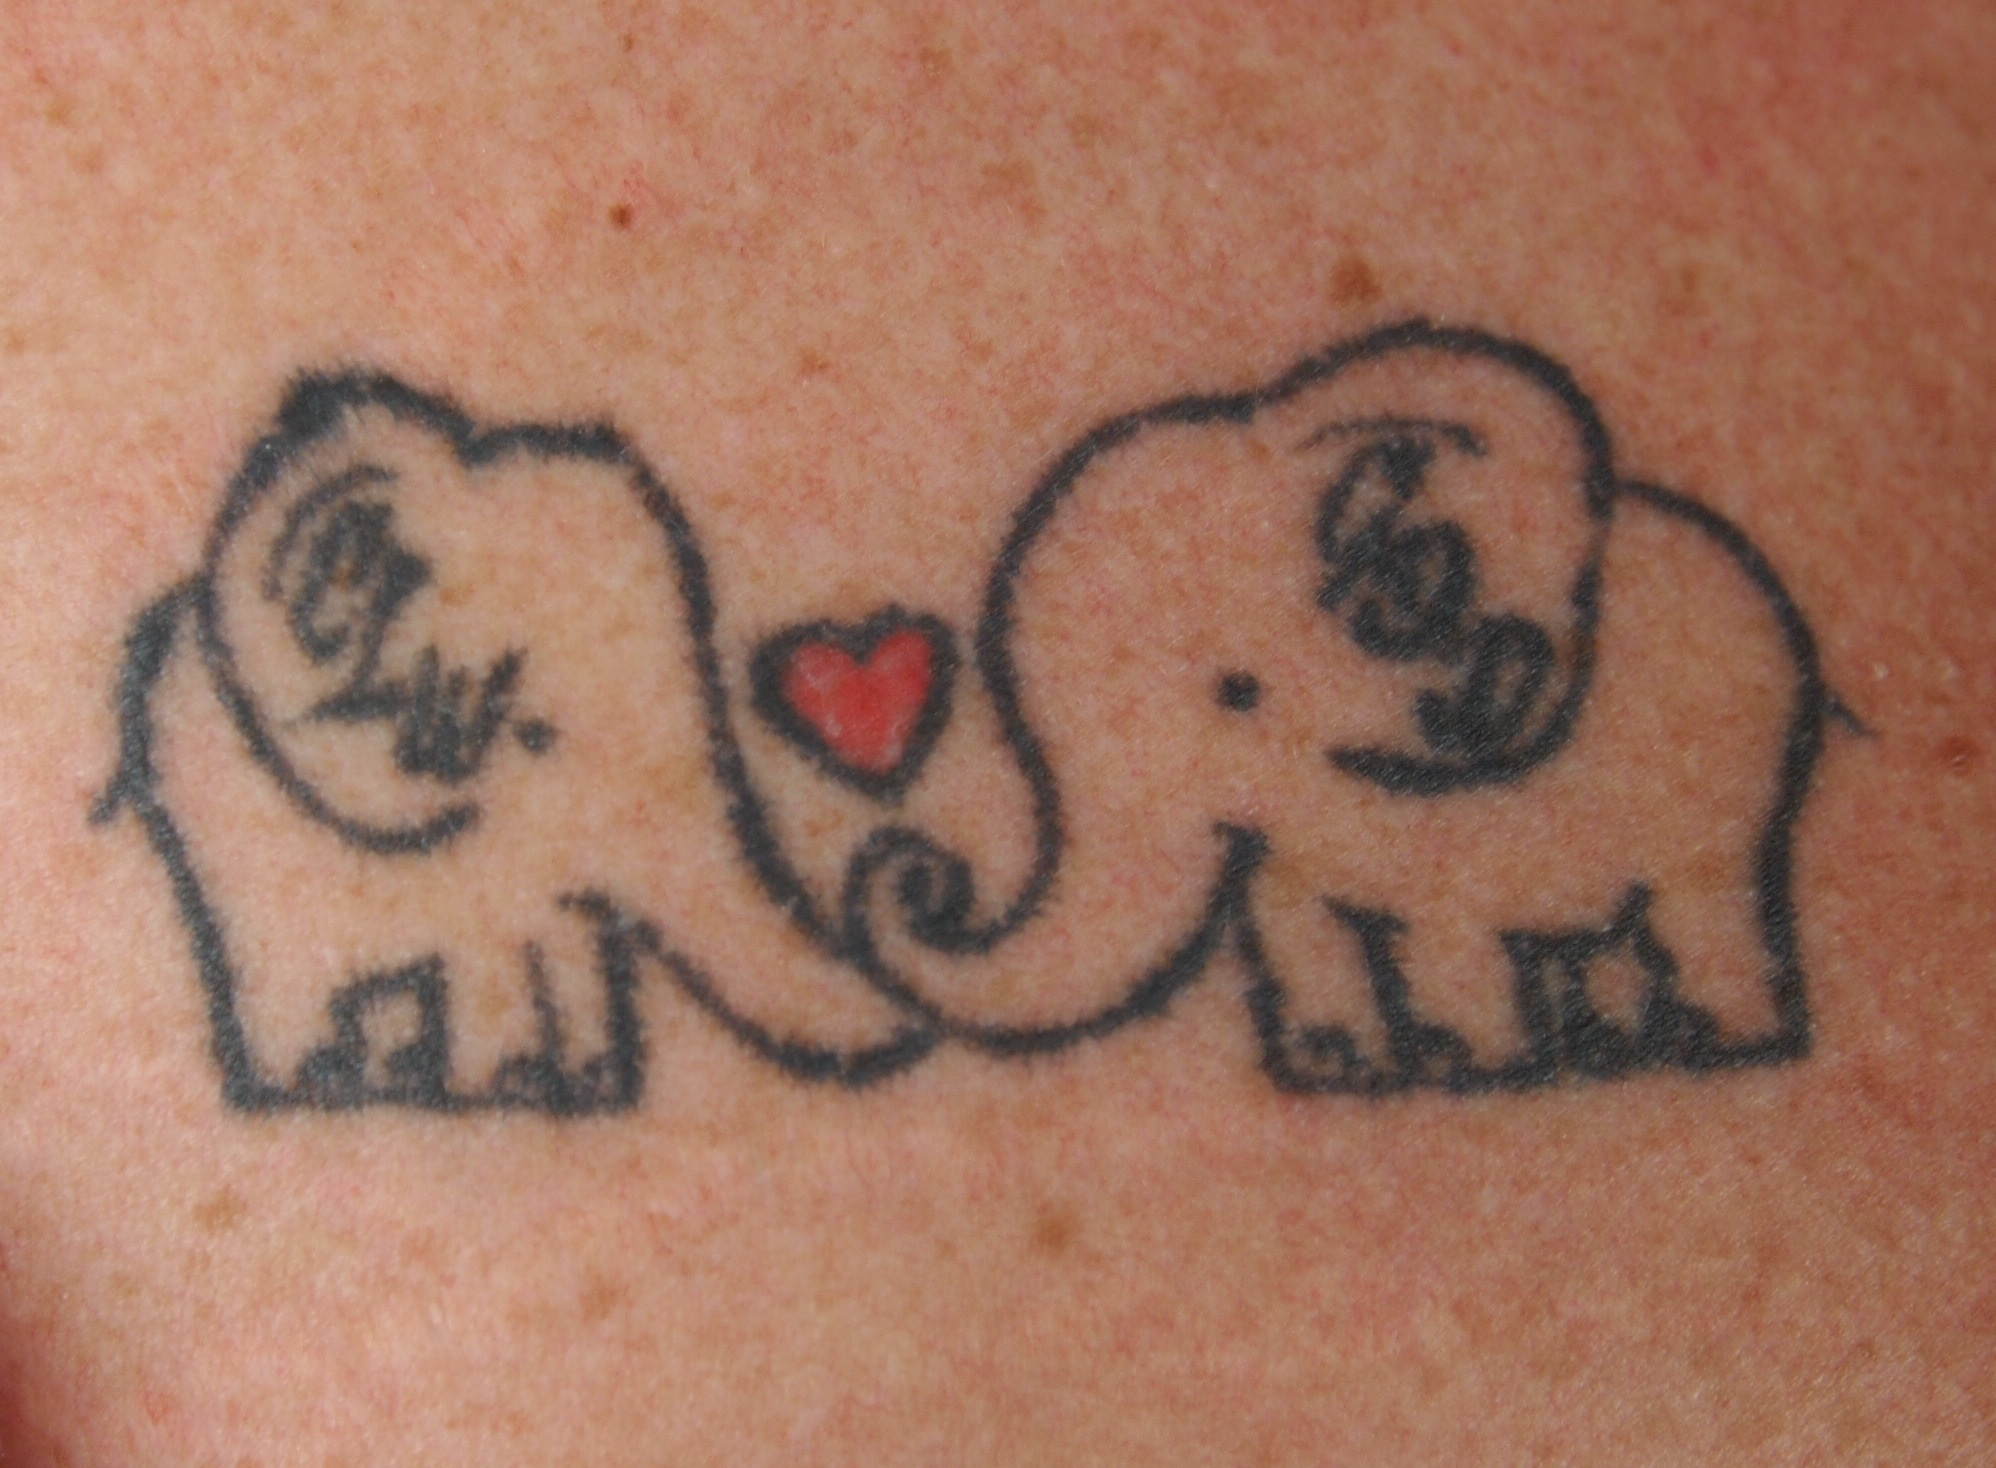 Tattoo on Crystal D. from The Story Behind the Tat: Tattoo Art in Central MN exhibit. Two elephants with a heart - a sister tattoo Crystal shares with her sister Grace. Tattoo by Jason Brigmon of Skyline Tattoo, Little Falls, MN 2015.